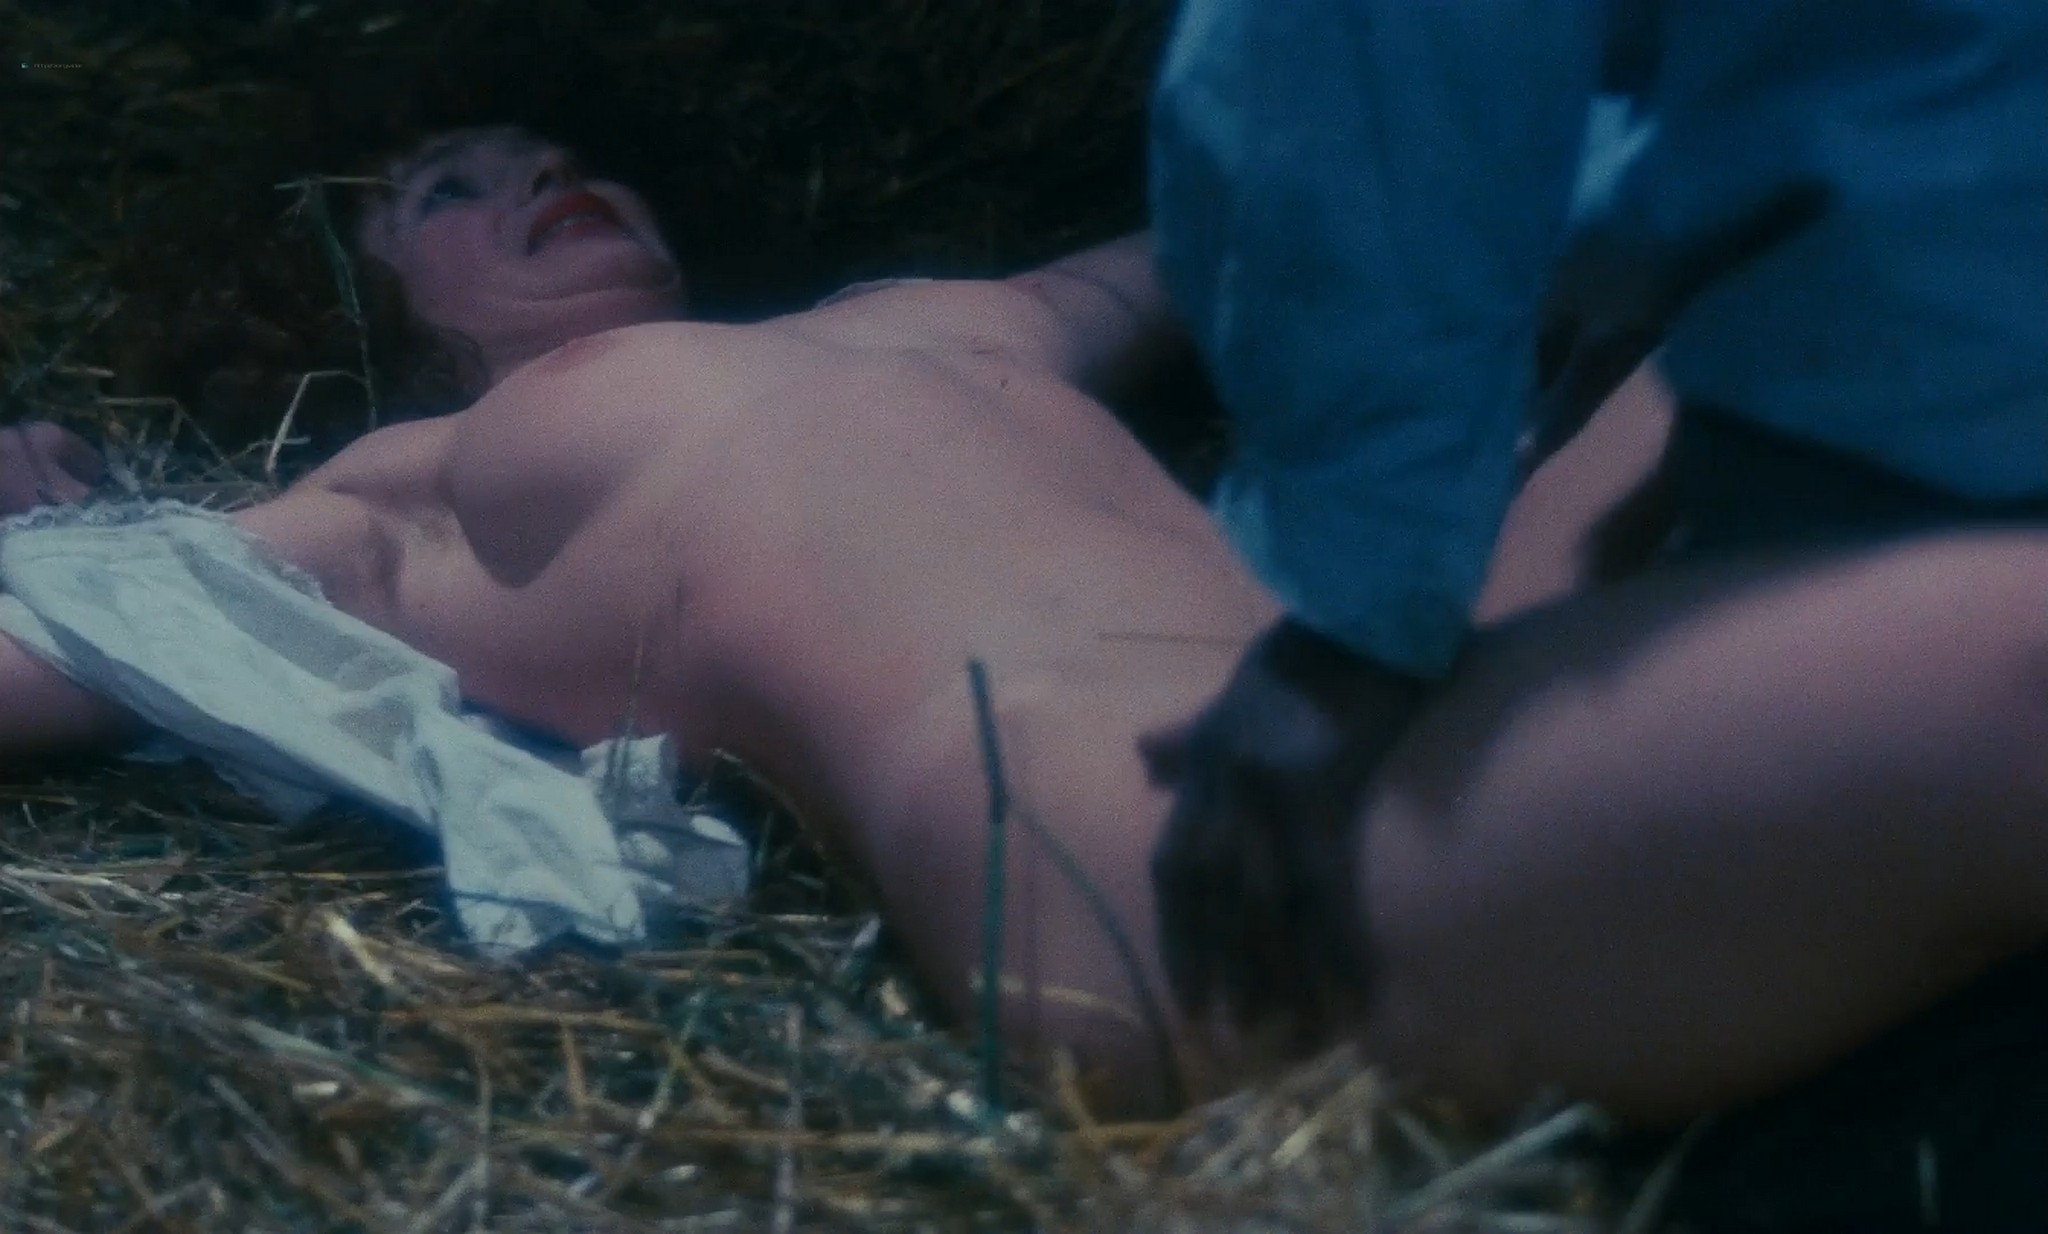 Marina Pierro nude sex Gaelle Legrand and Pascale Christophe nude bush and sex Les heroines du mal 1979 1080p BluRay REMUX 15